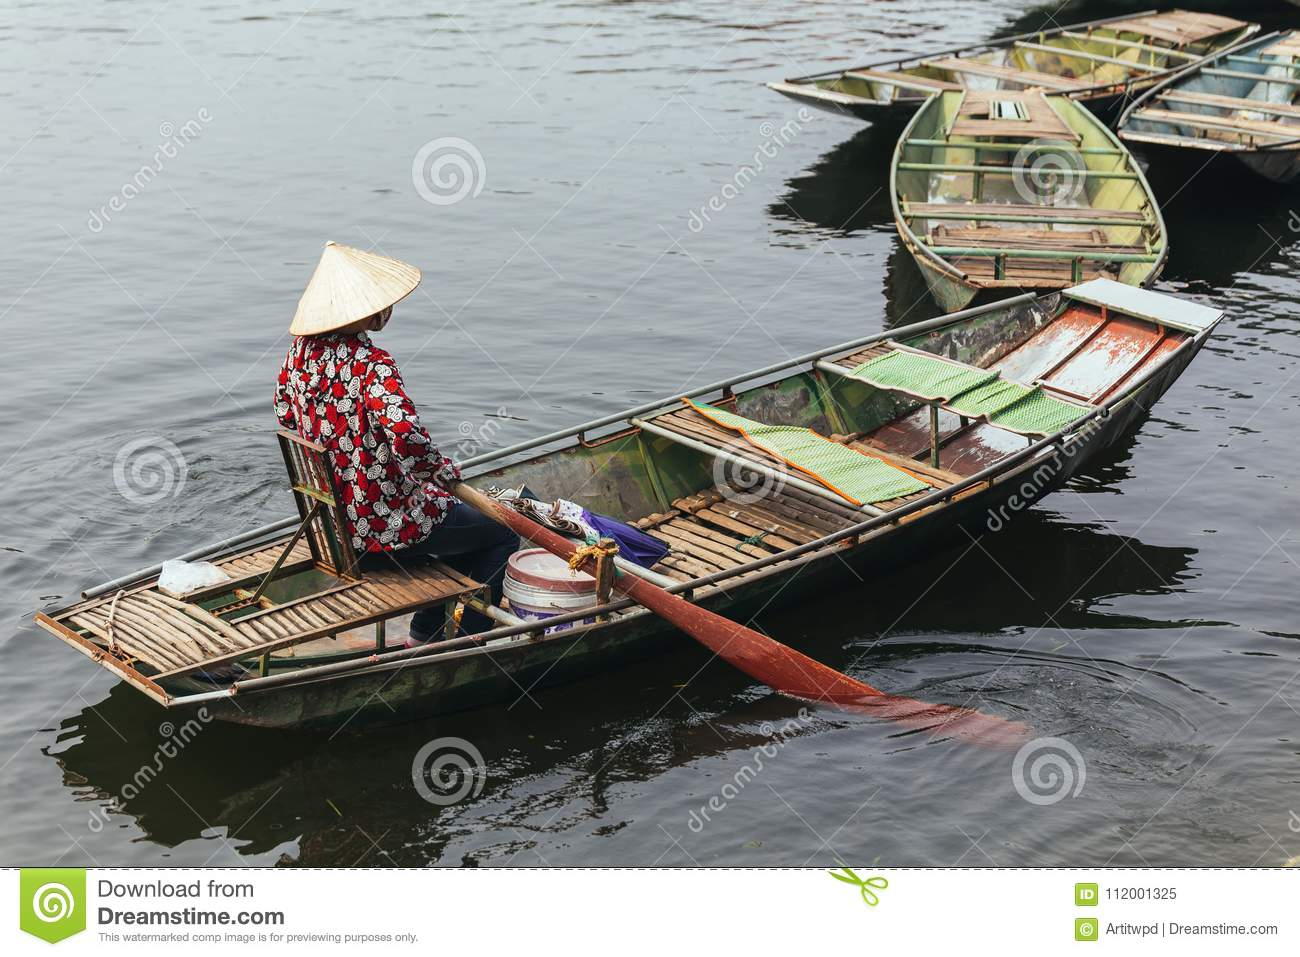 Rowing boat woman wearing red and white colors shirt, conical hat and mouth mask sitting in a boat with paddles over the river.